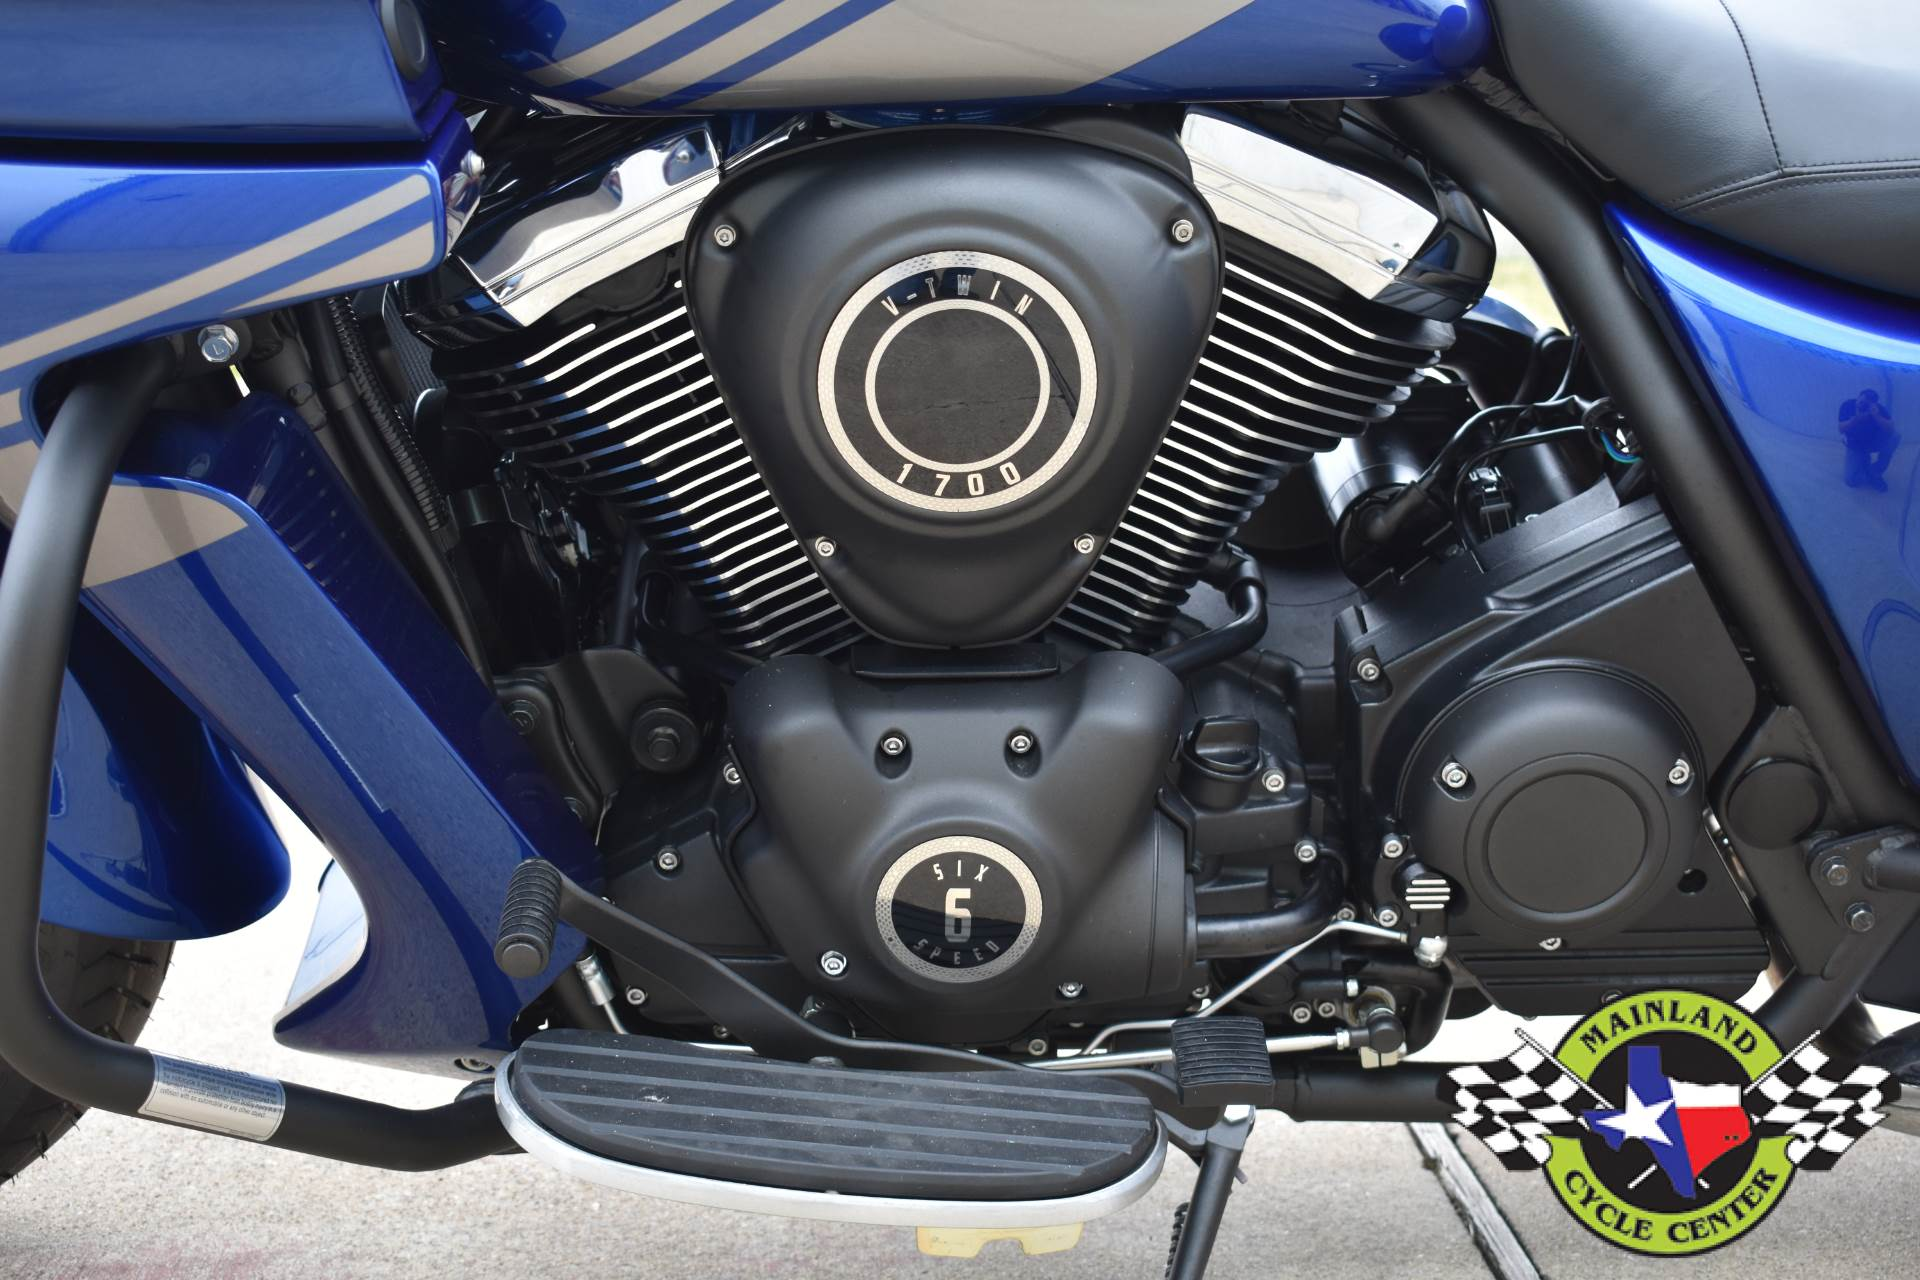 2020 Kawasaki Vulcan 1700 Vaquero ABS in La Marque, Texas - Photo 15